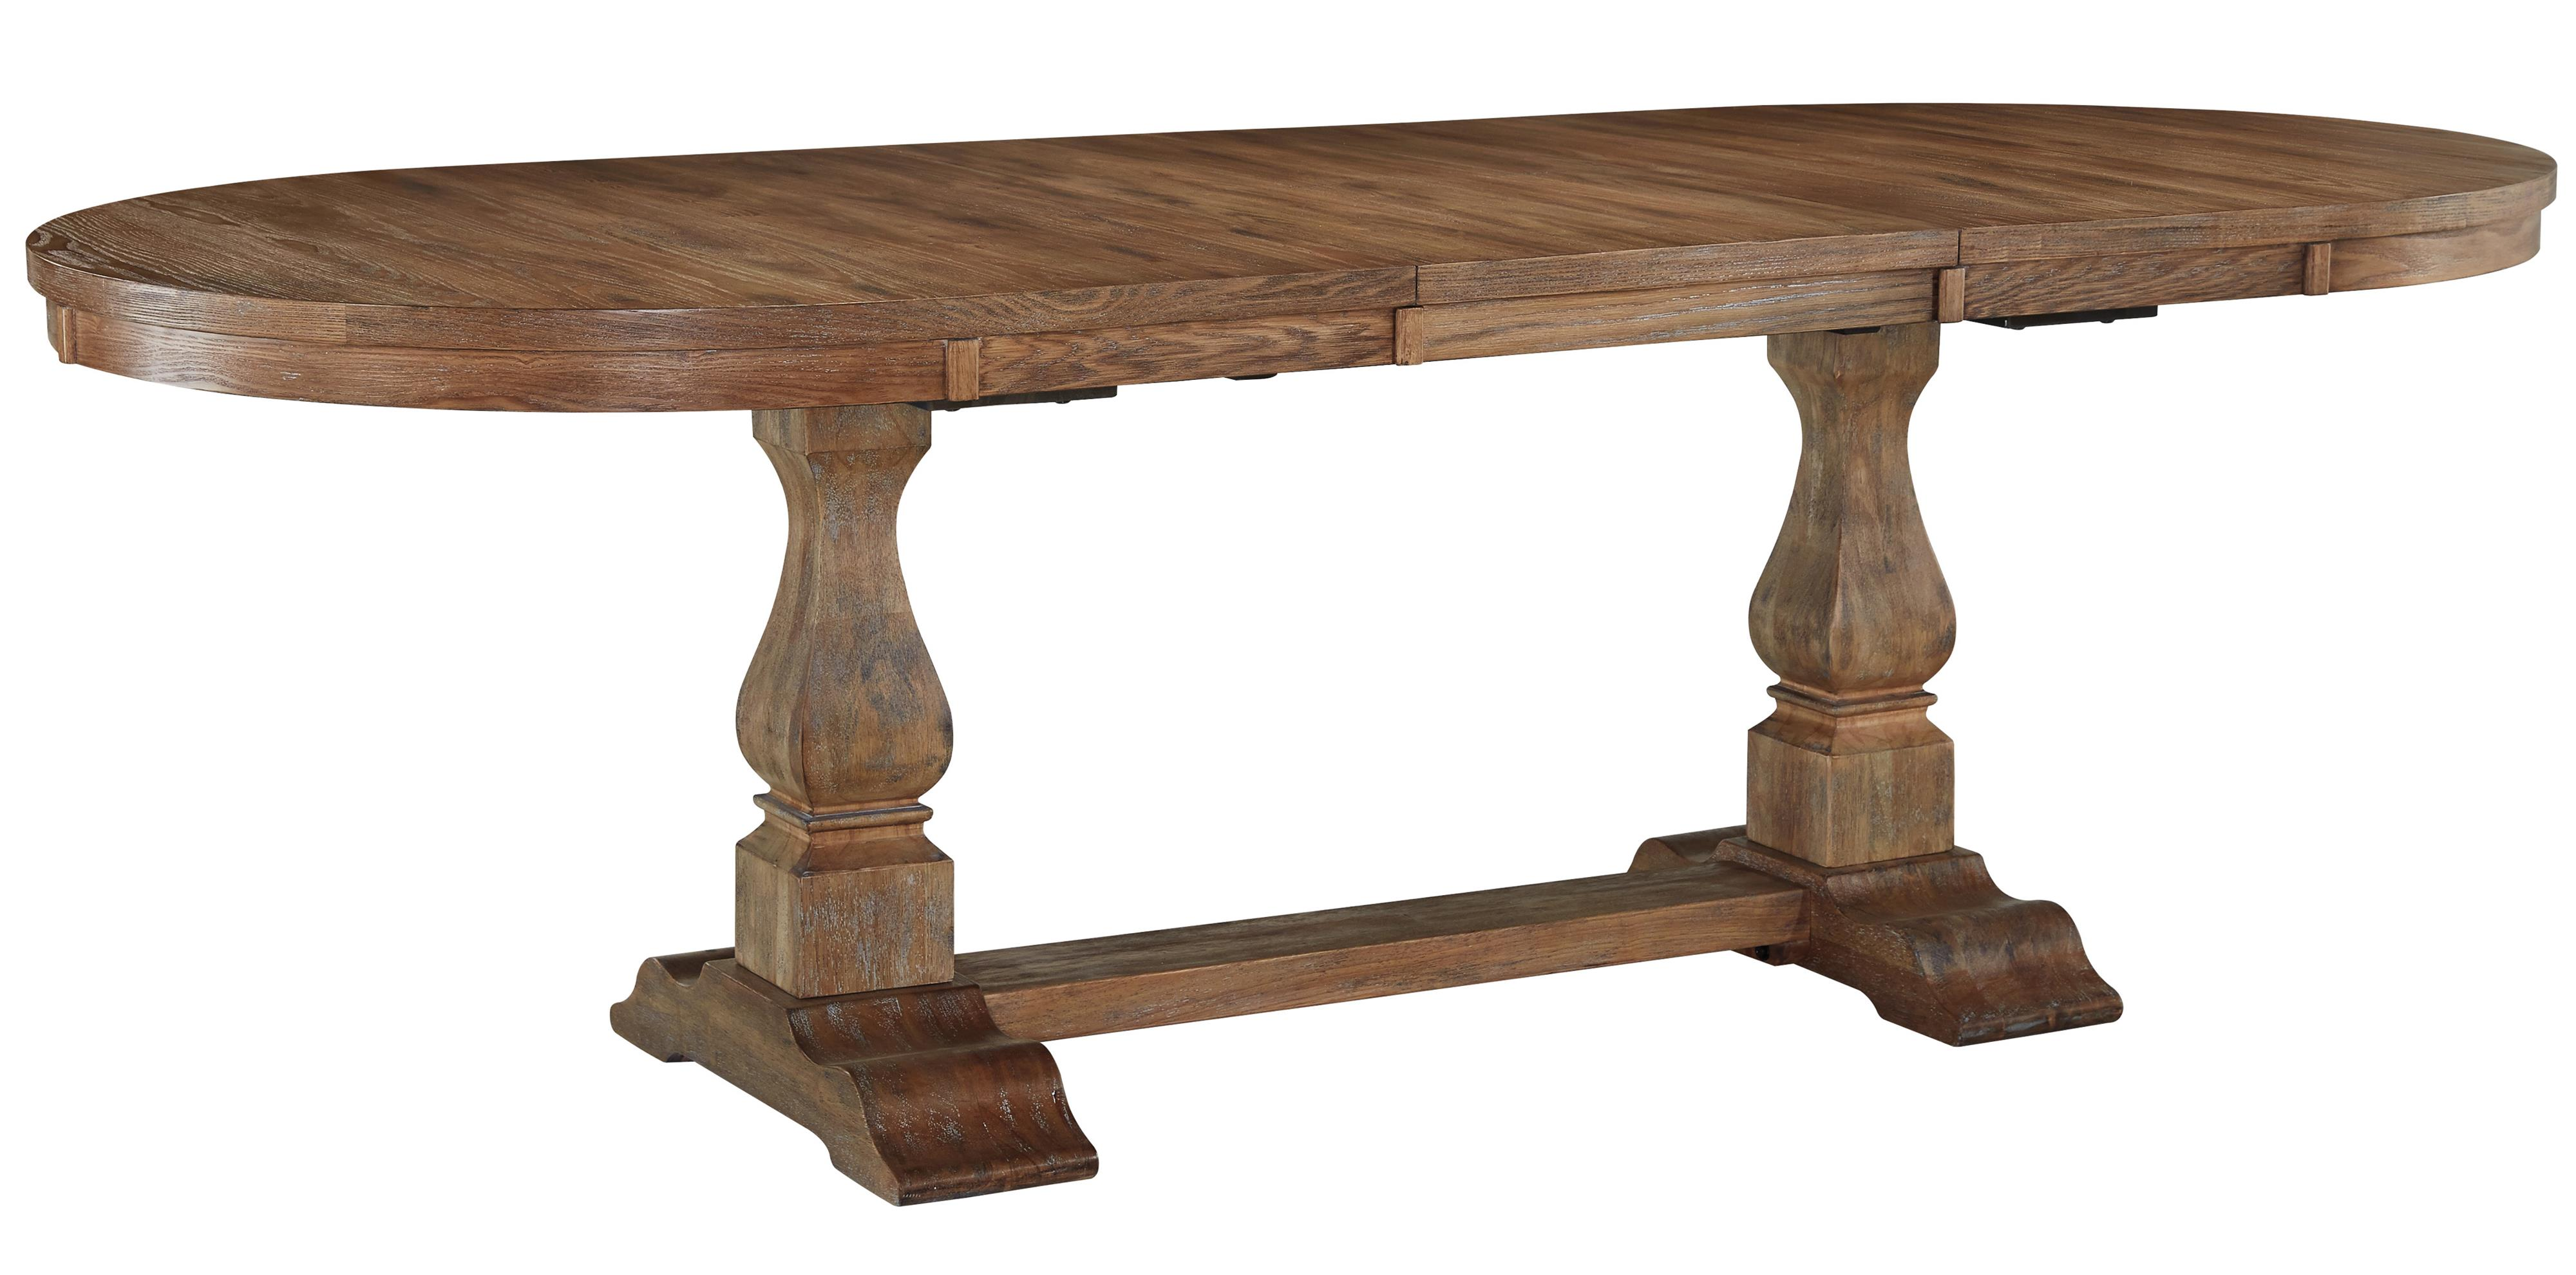 Signature Design by Ashley Danimore Oval Dining Room Extension Table - Item Number: D473-45B+T